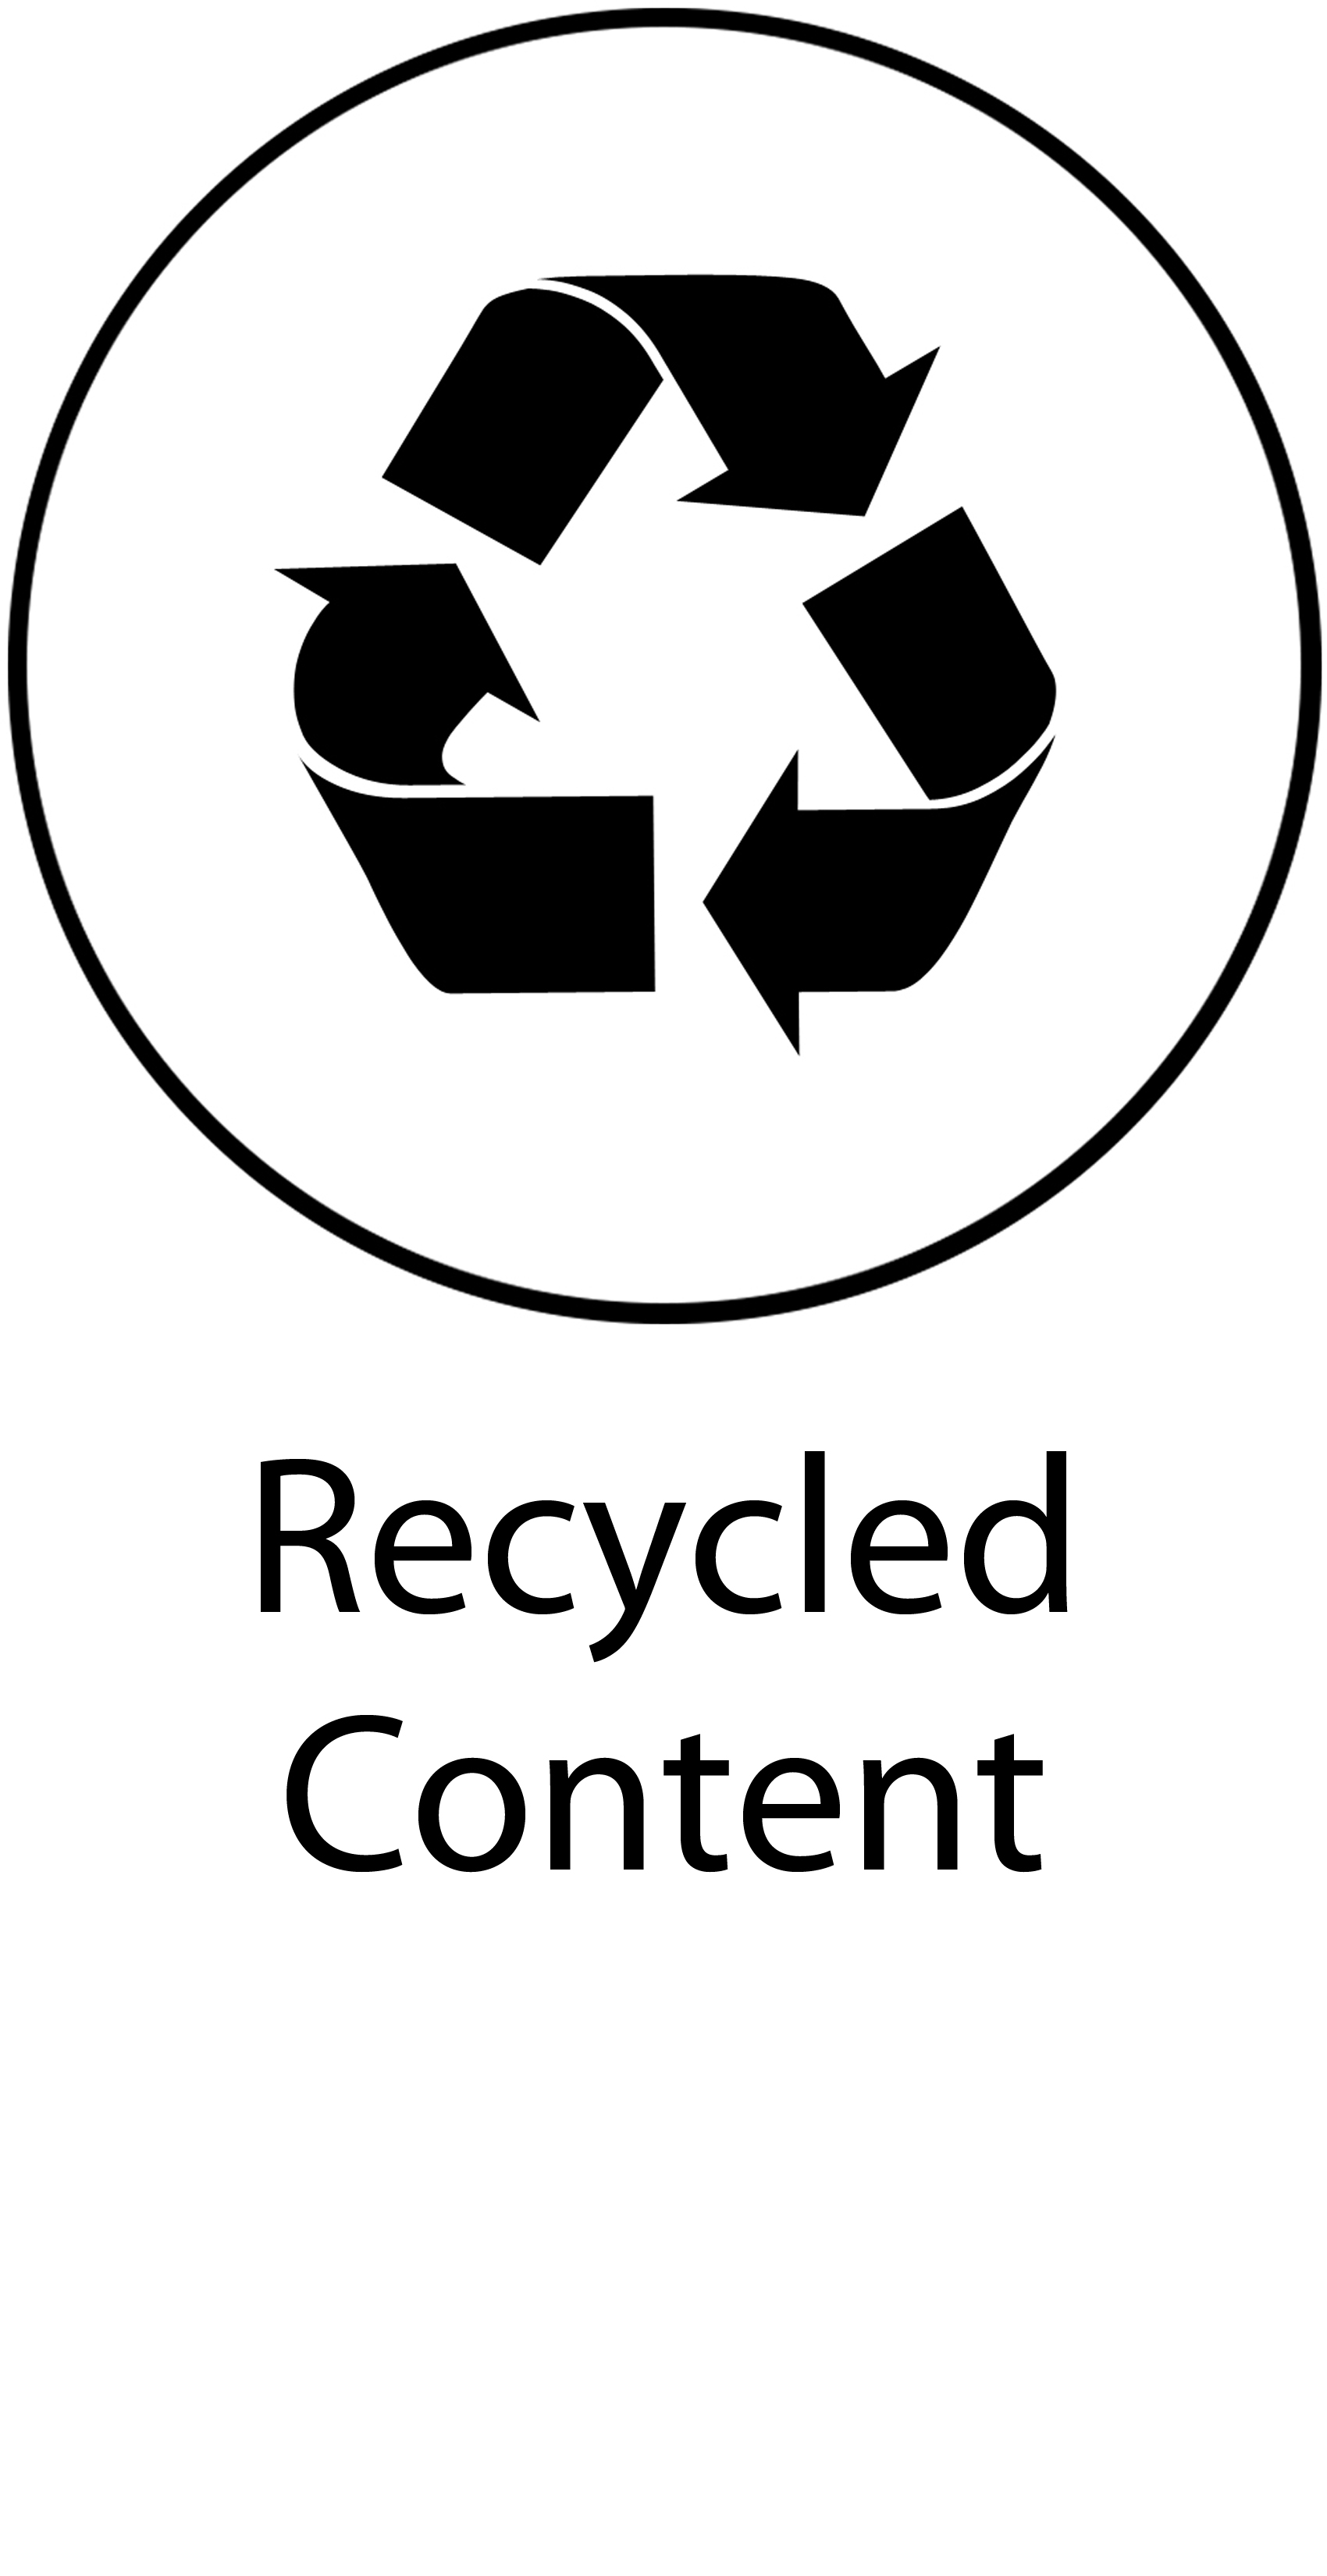 Recycled Content.jpg